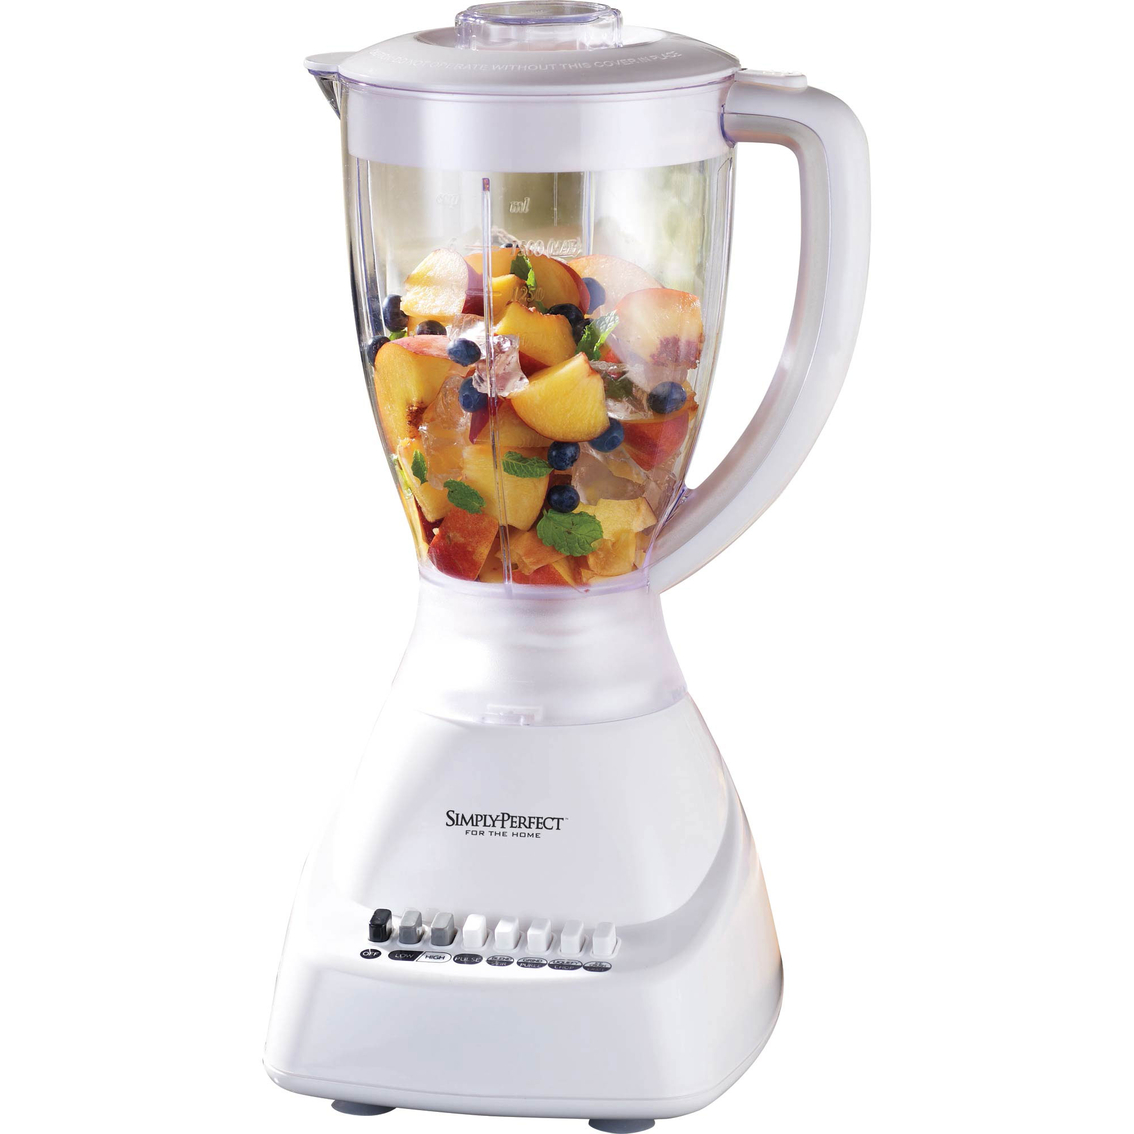 Simply perfect 10 speed blender blenders home for Kitchen perfected blender